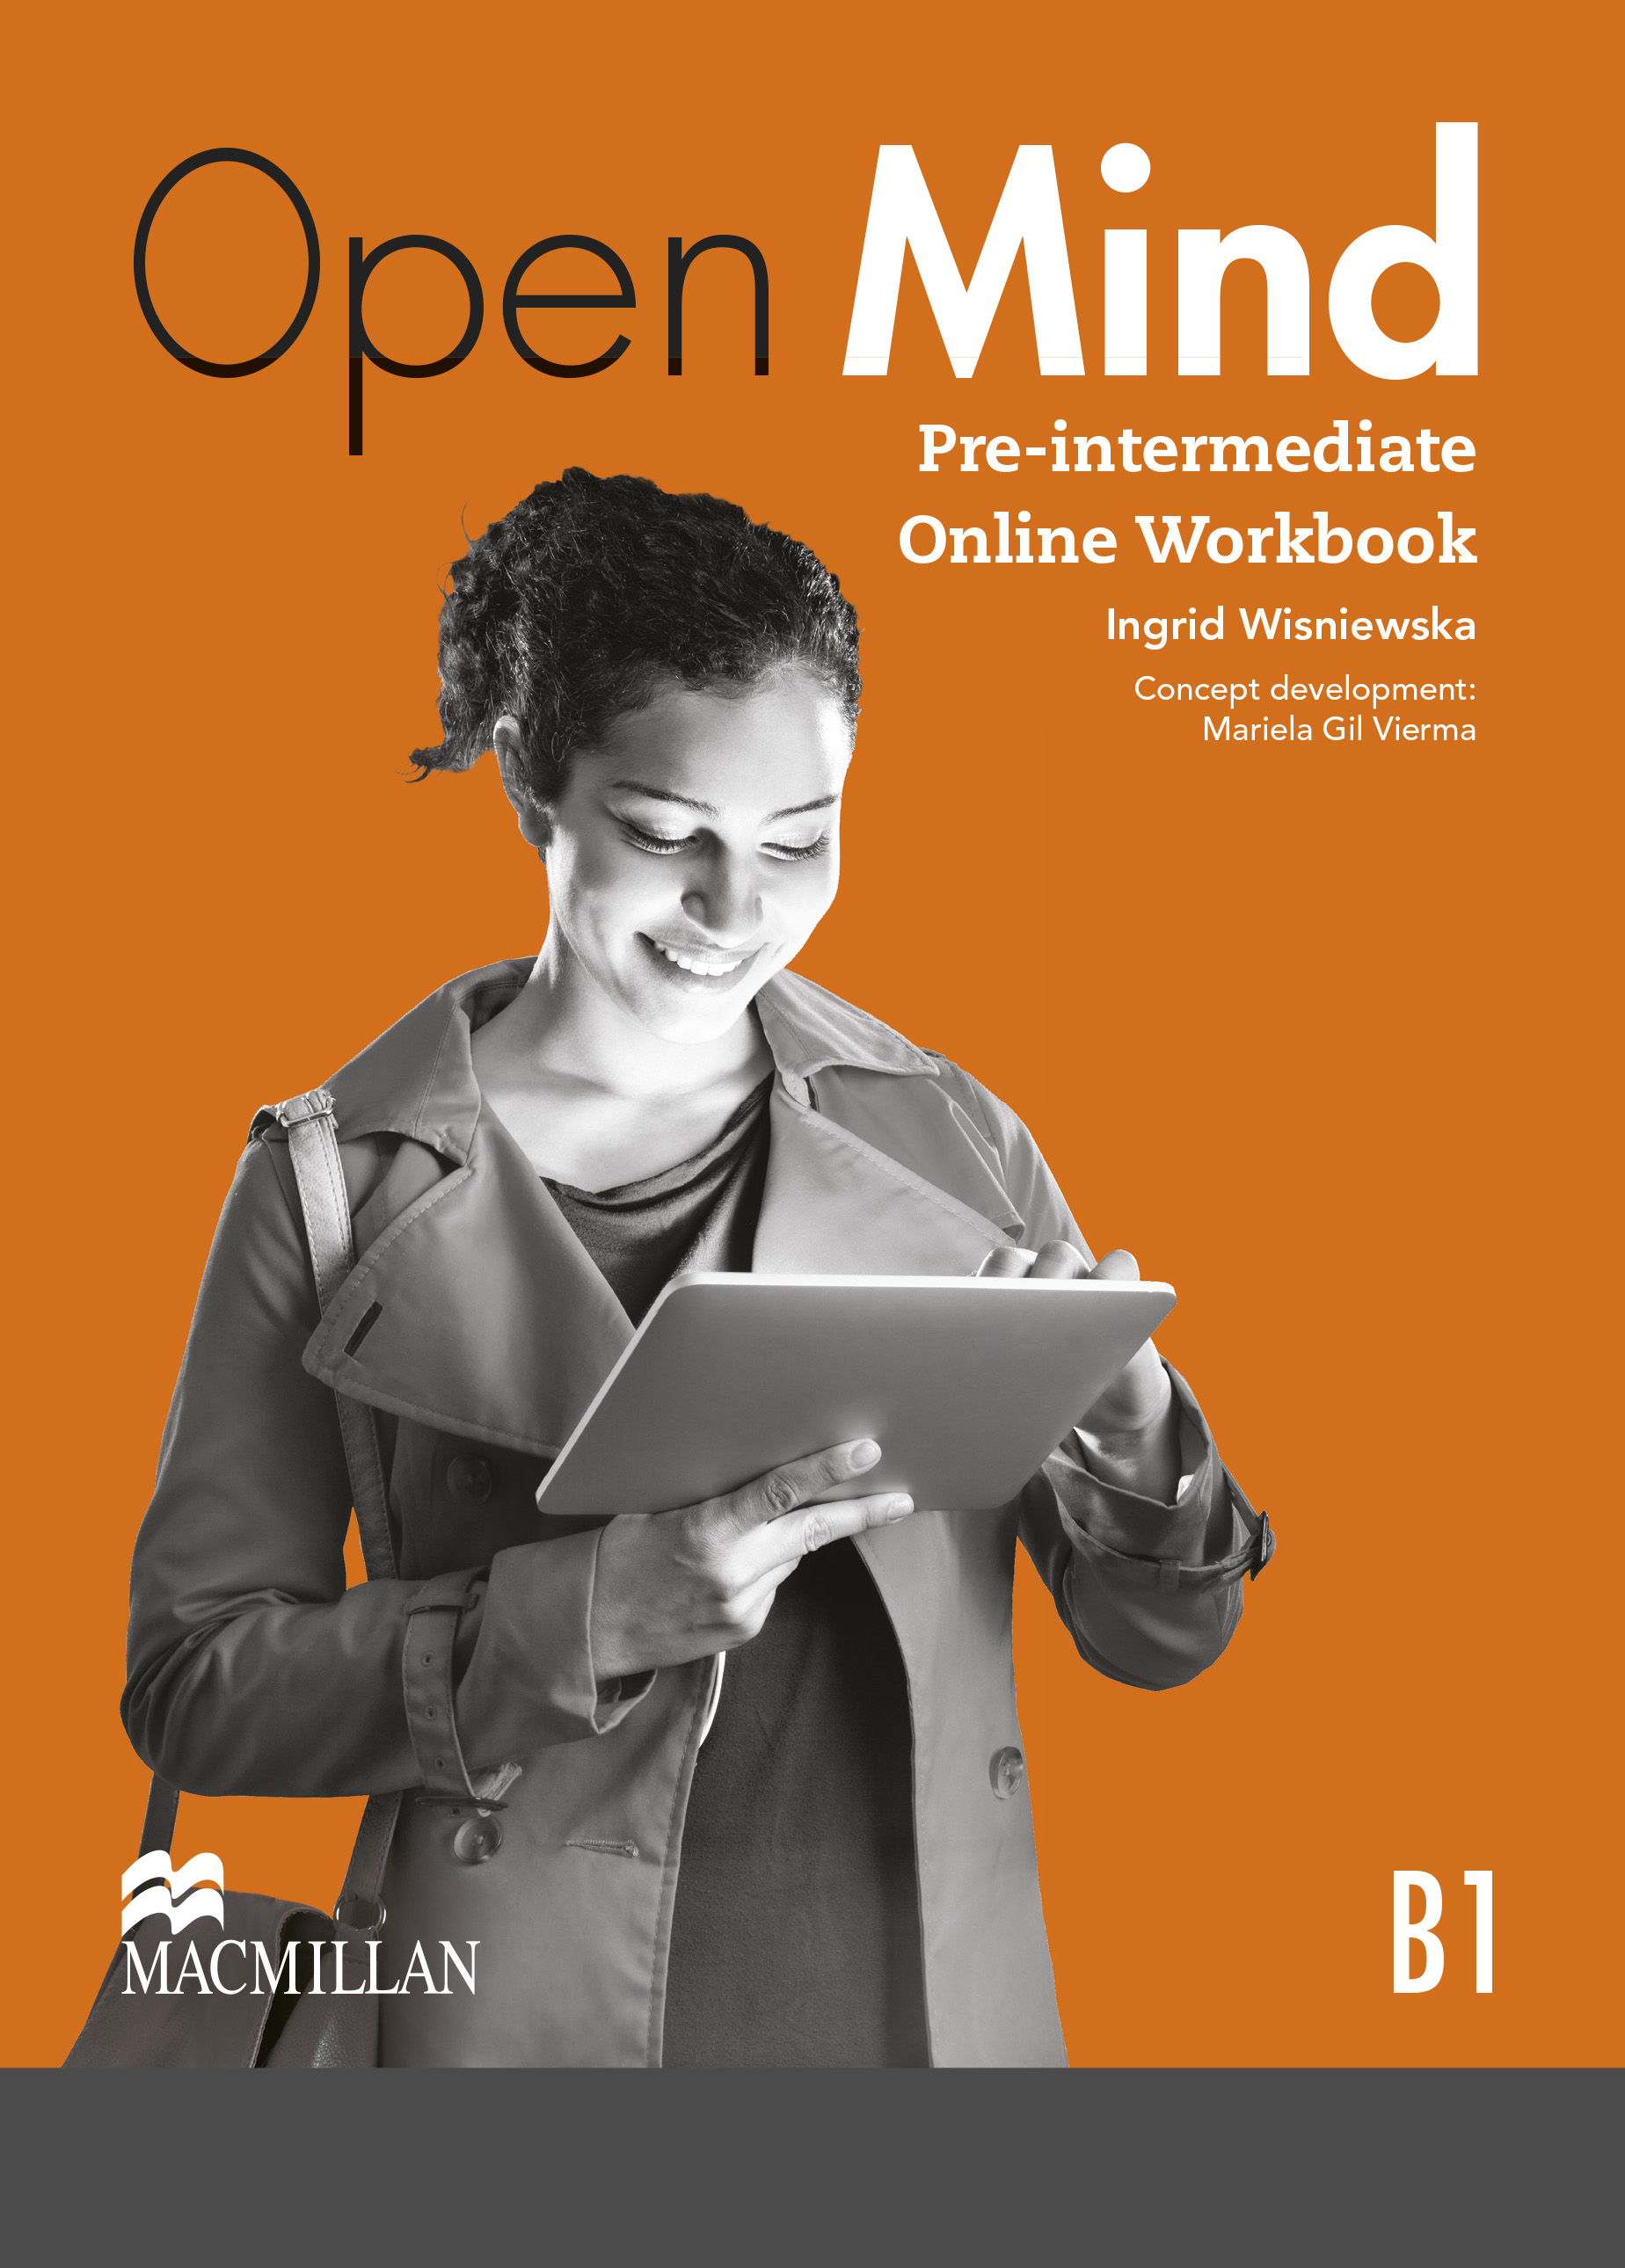 Open Mind Pre-intermediate Online Workbook